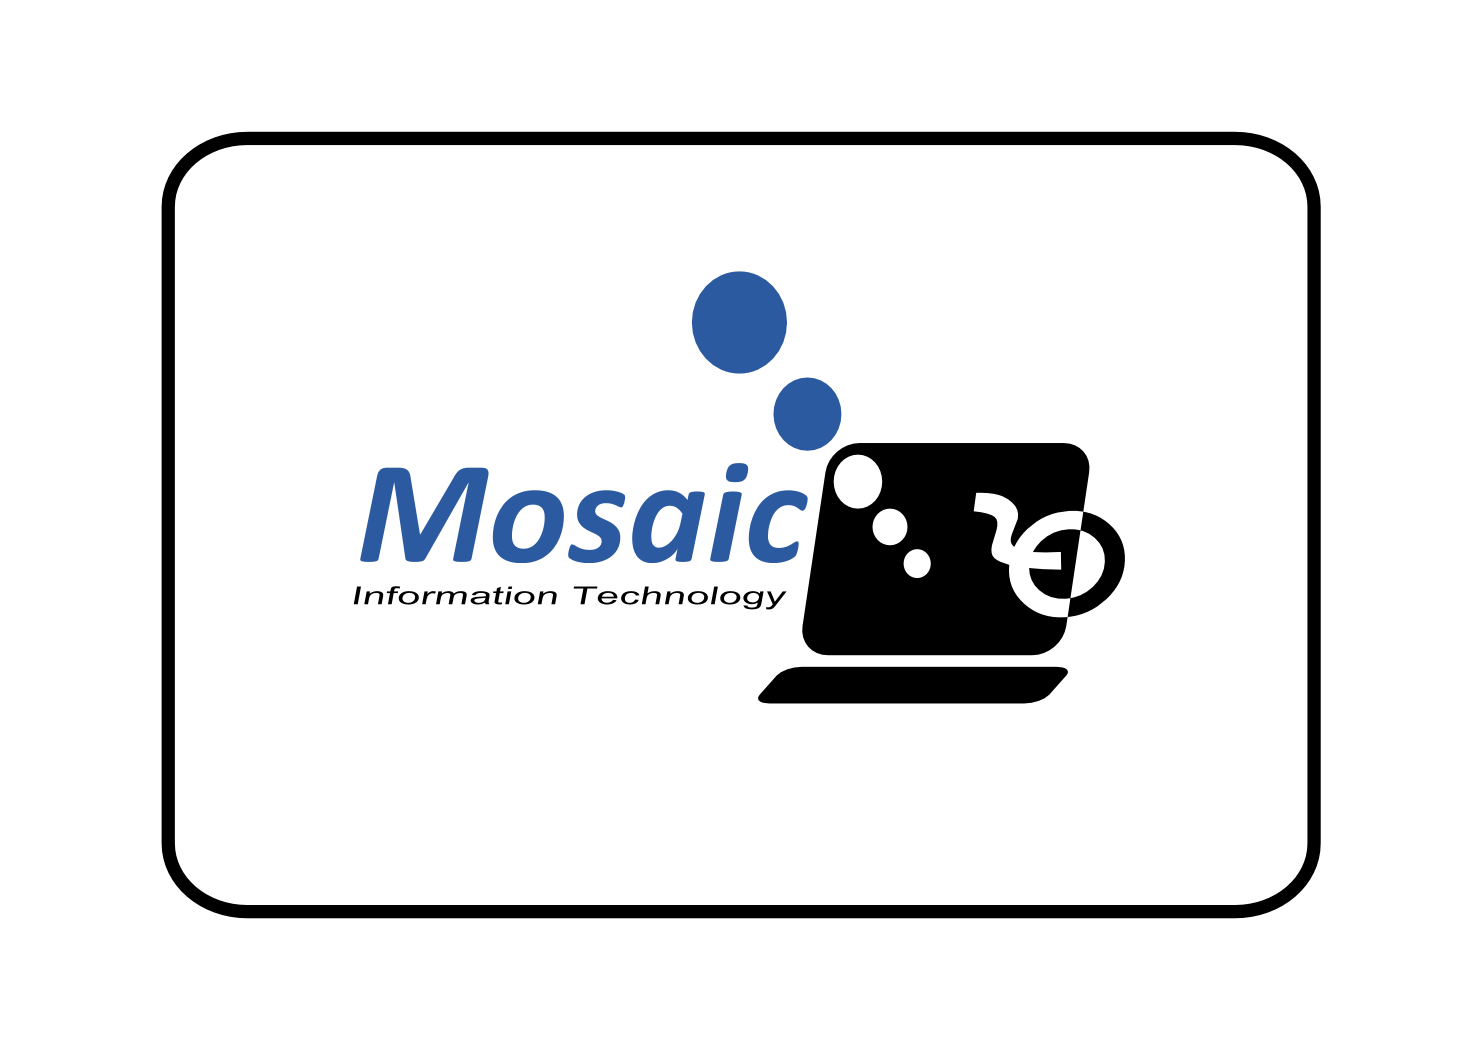 Logo Design by whoosef - Entry No. 68 in the Logo Design Contest Mosaic Information Technology Logo Design.